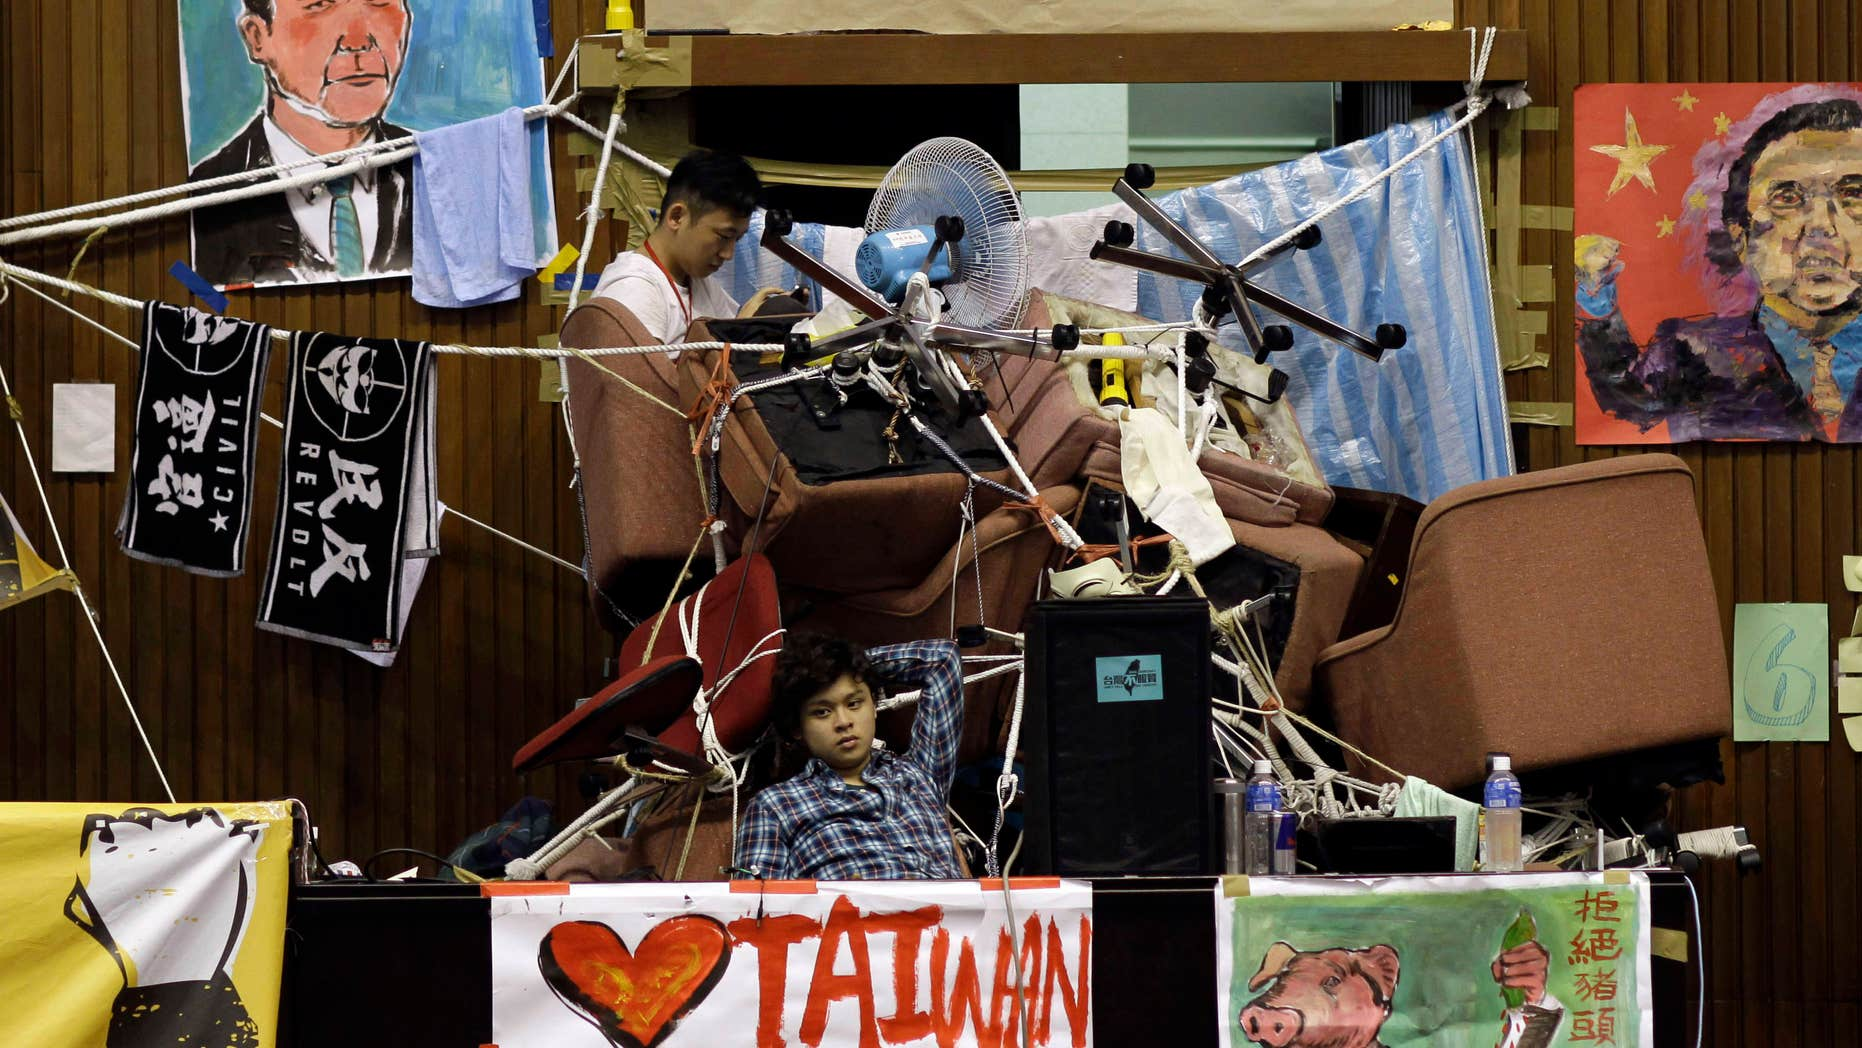 March 28, 2014:  Student protesters against a pro-China trade pact continue to occupy the legislature floor in Taipei, Taiwan.